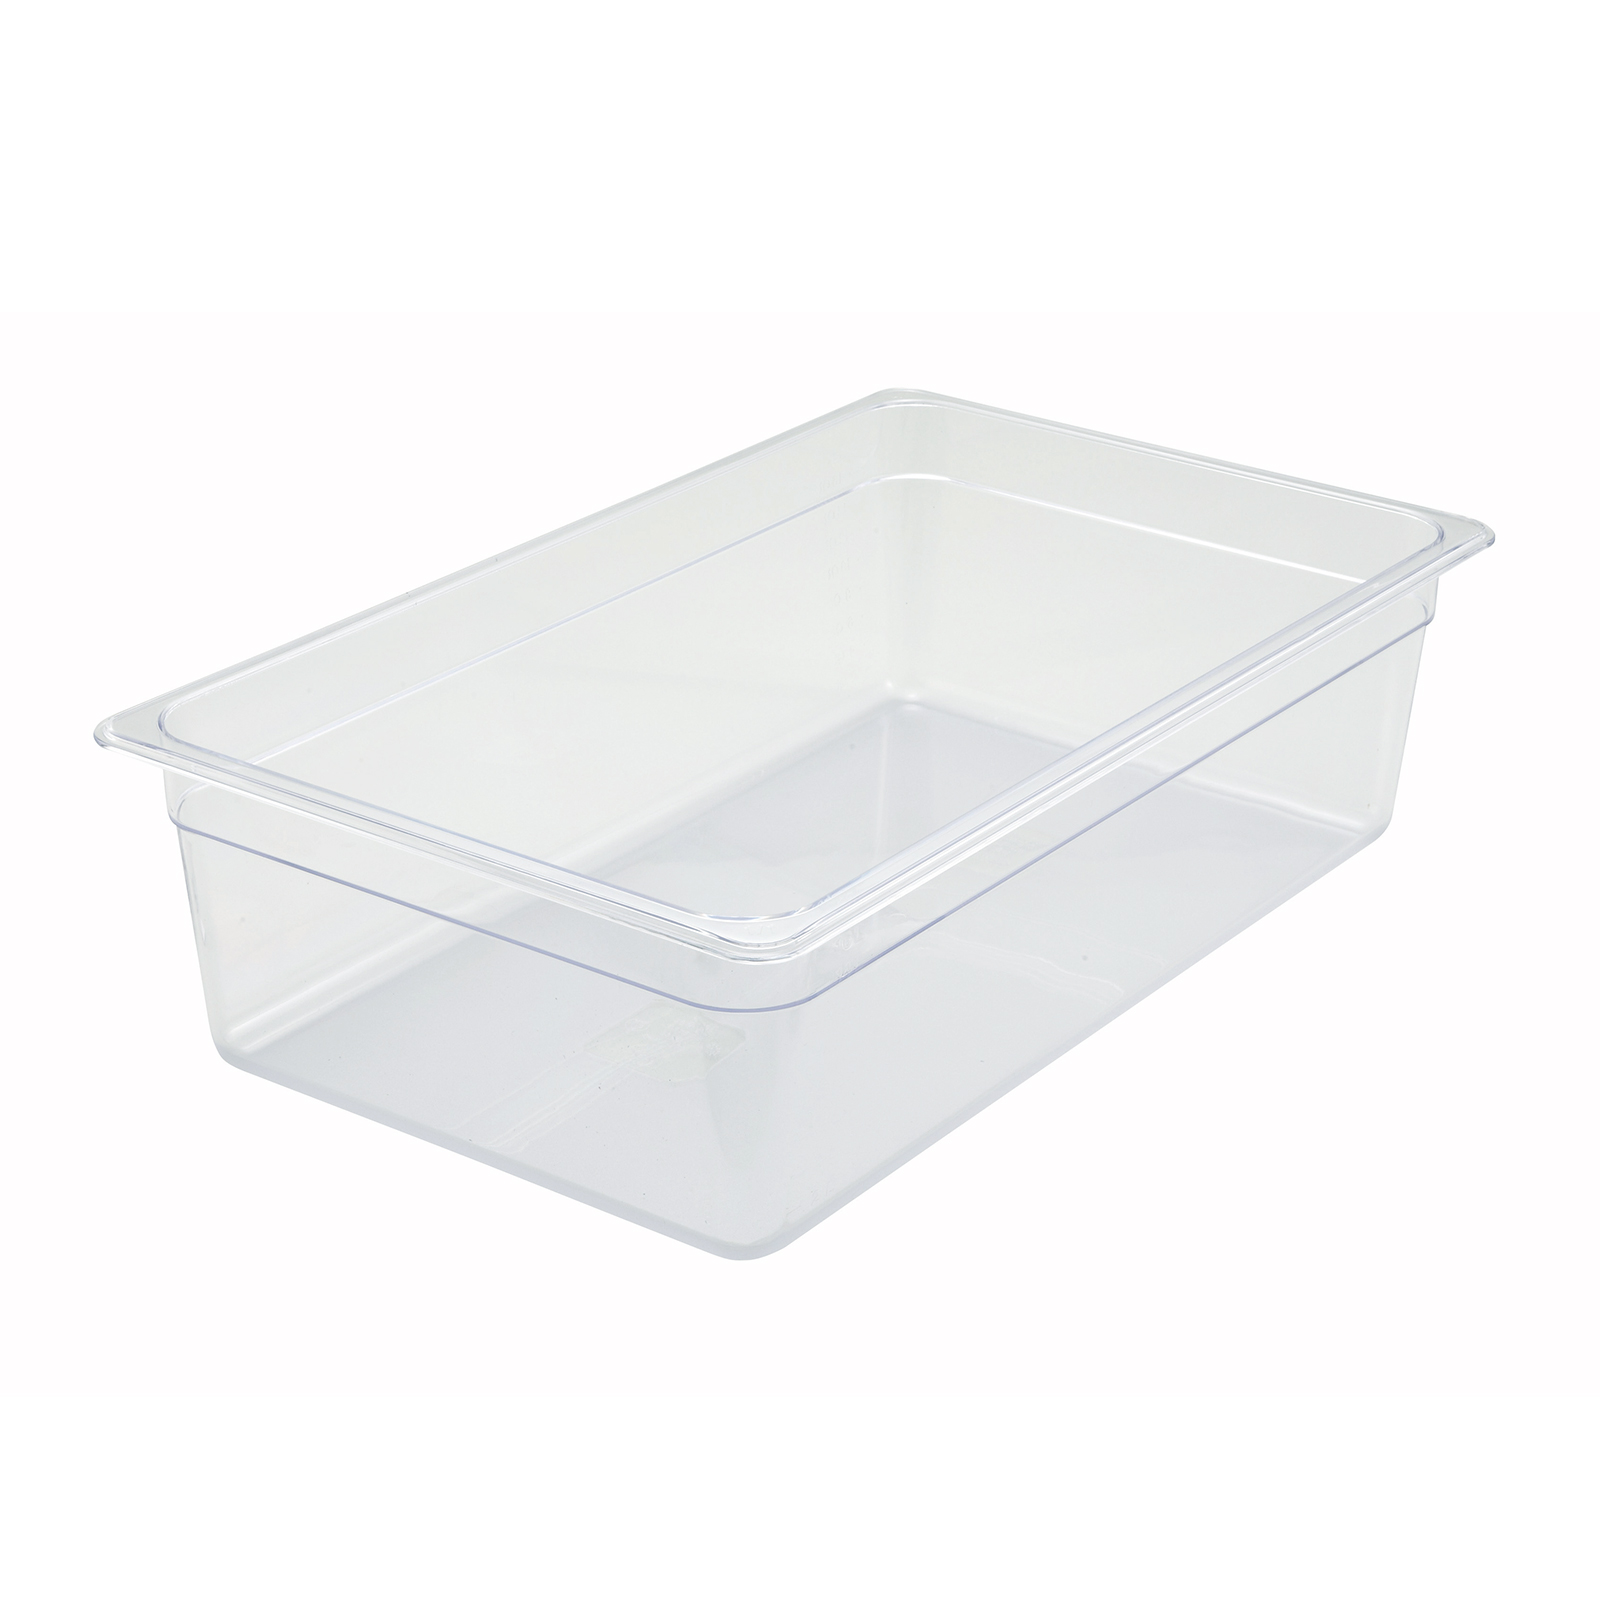 Winco SP7106 food pan, plastic